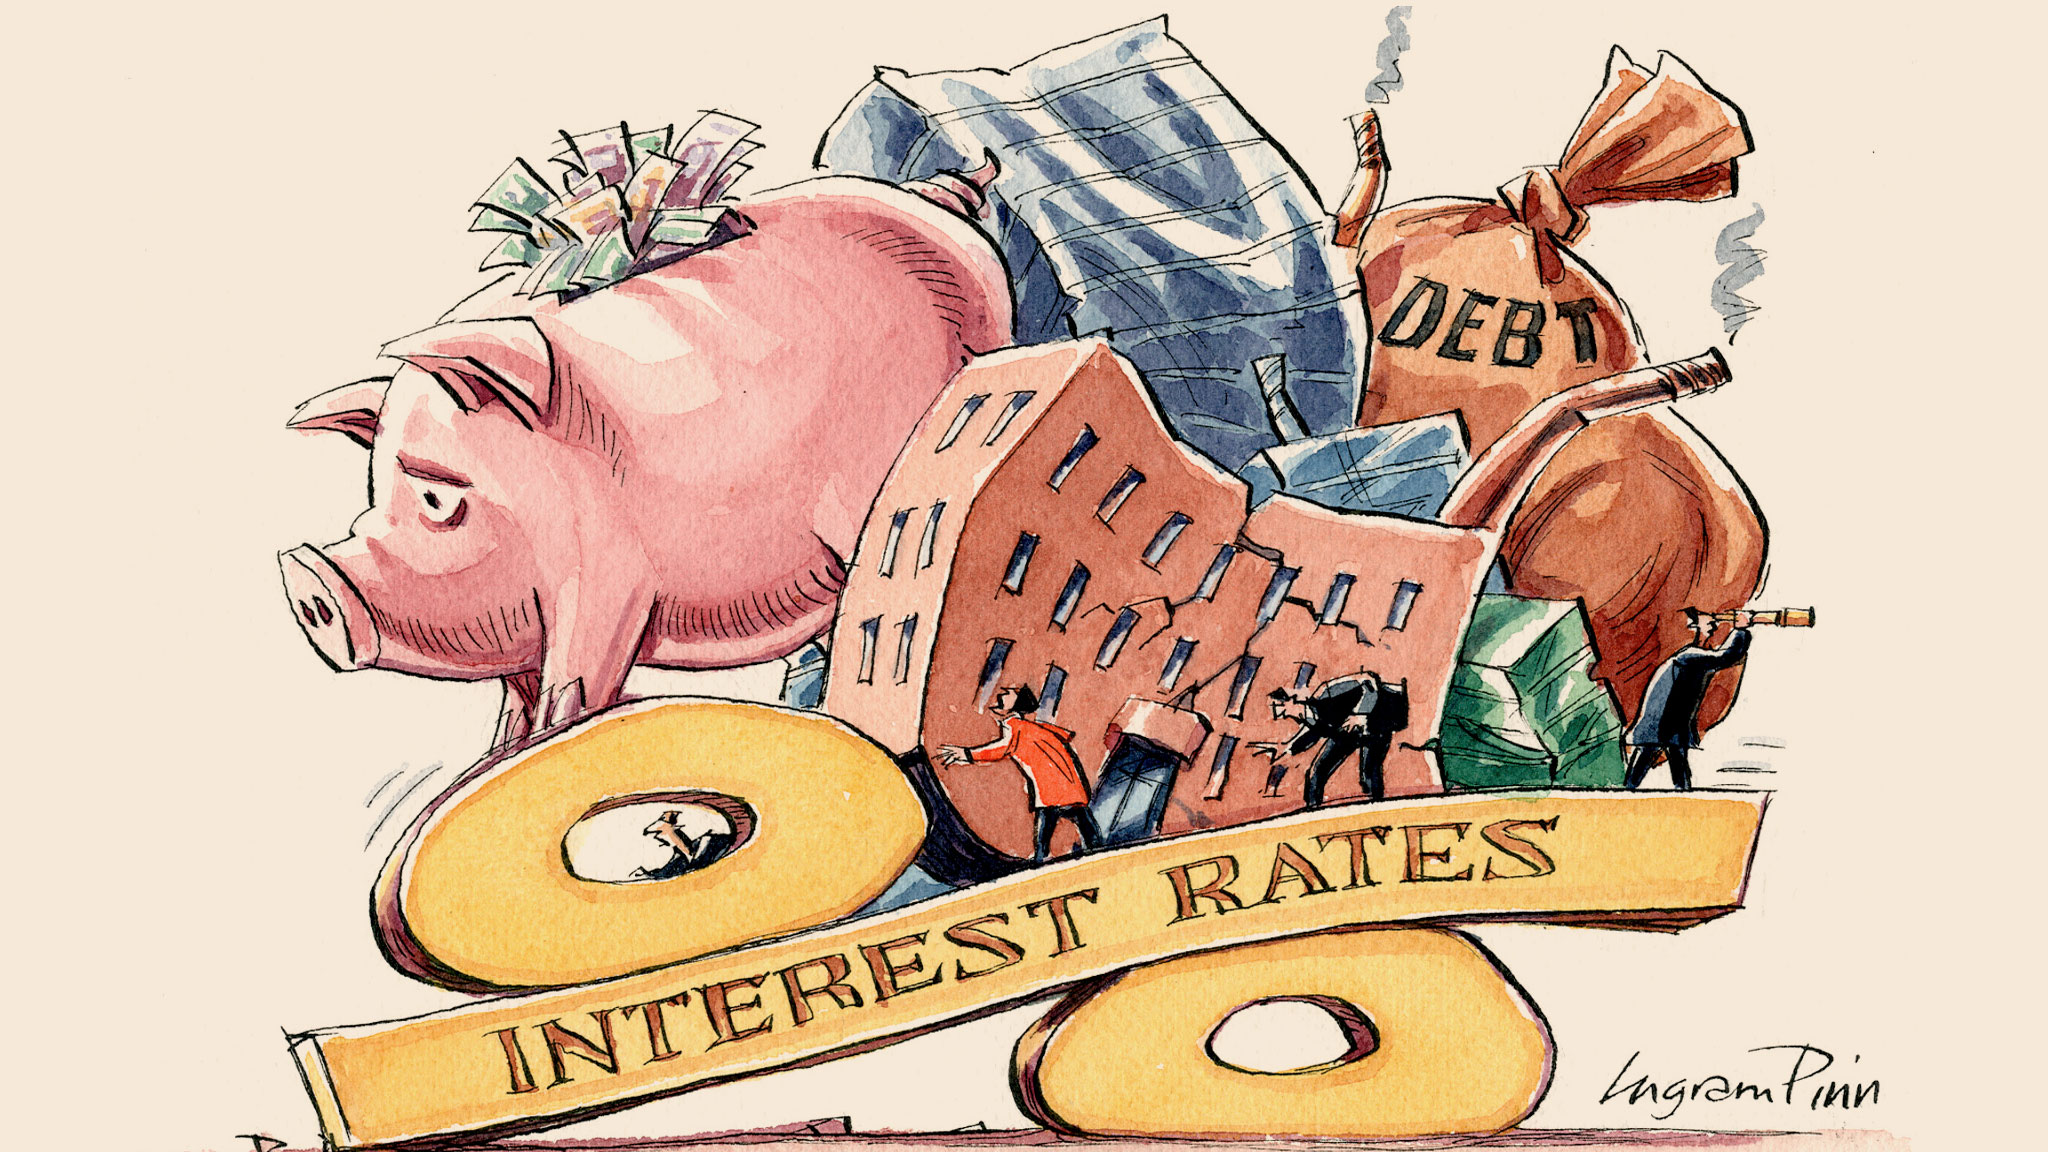 Nominal interest rate clipart clipart library library Strong currents that keep interest rates down | Financial Times clipart library library